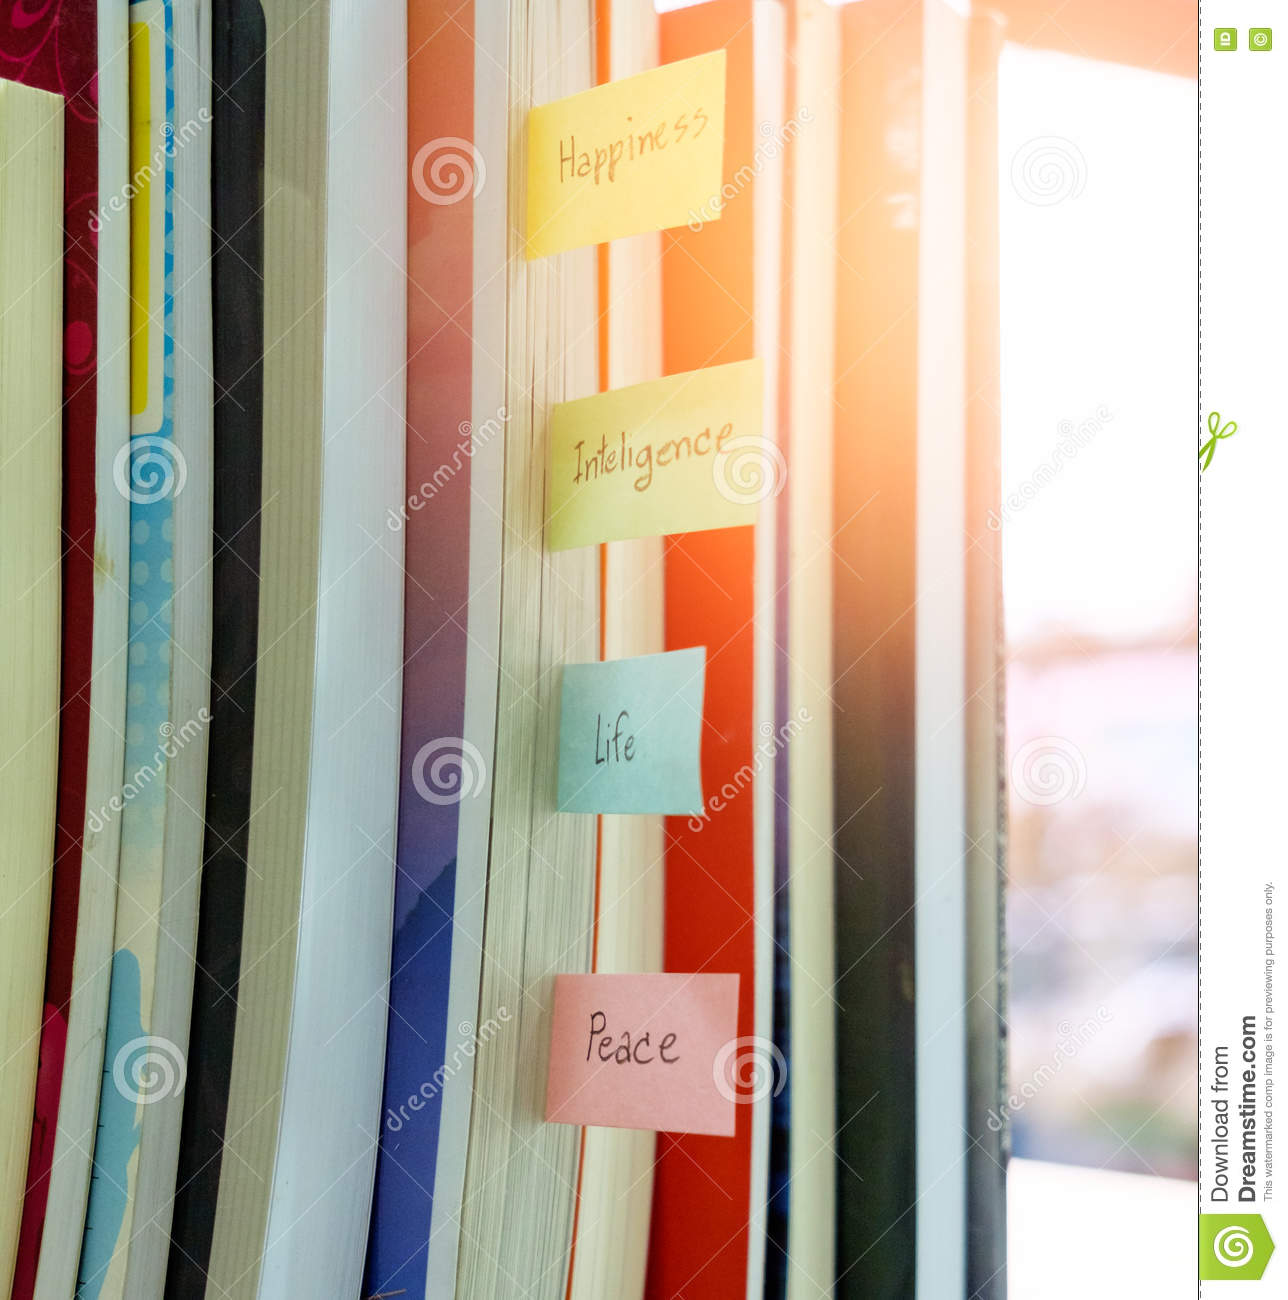 books are sort arranged category happiness